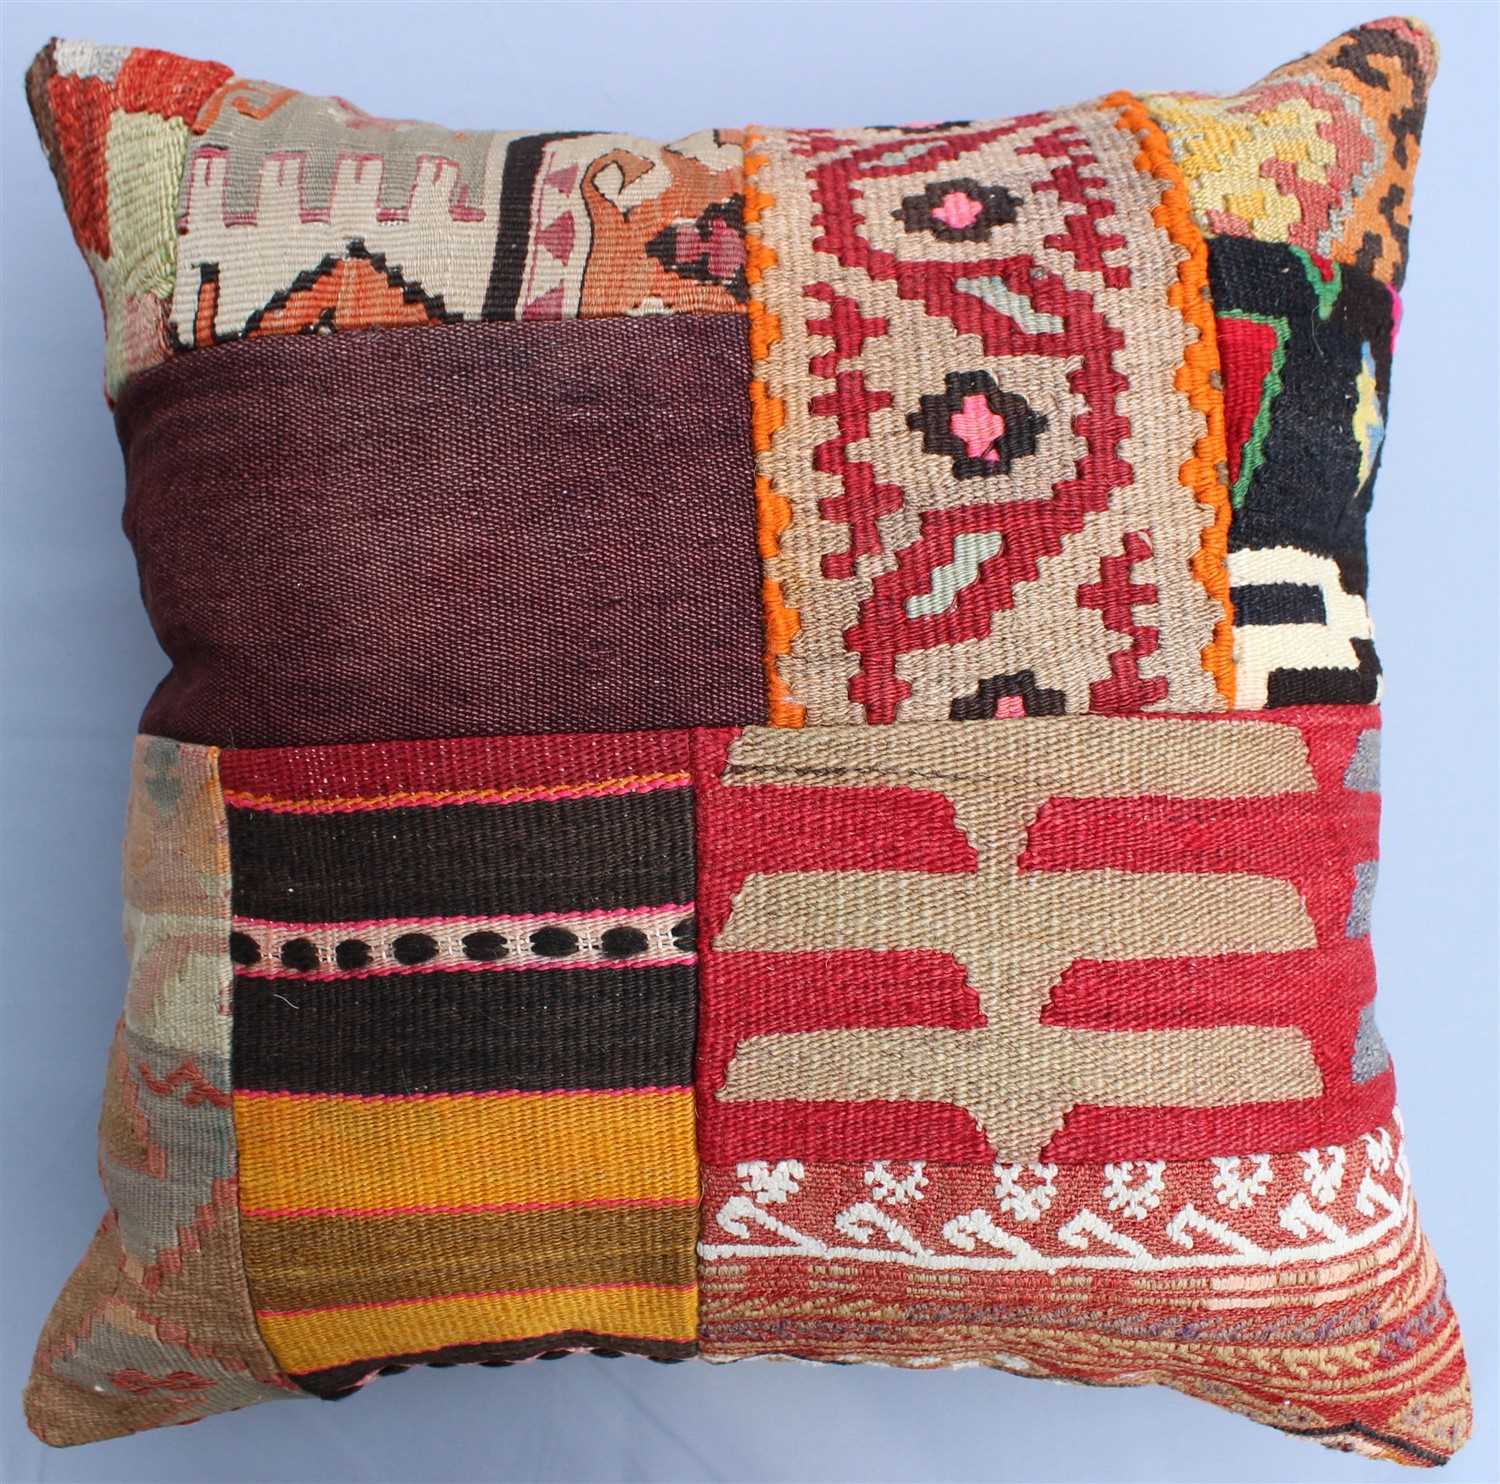 tribal dragon suzani throw product cushions pillows kilim interiors accent decor ejder green cushion decorative insert vibrant bohemian sofa pillow w moroccan